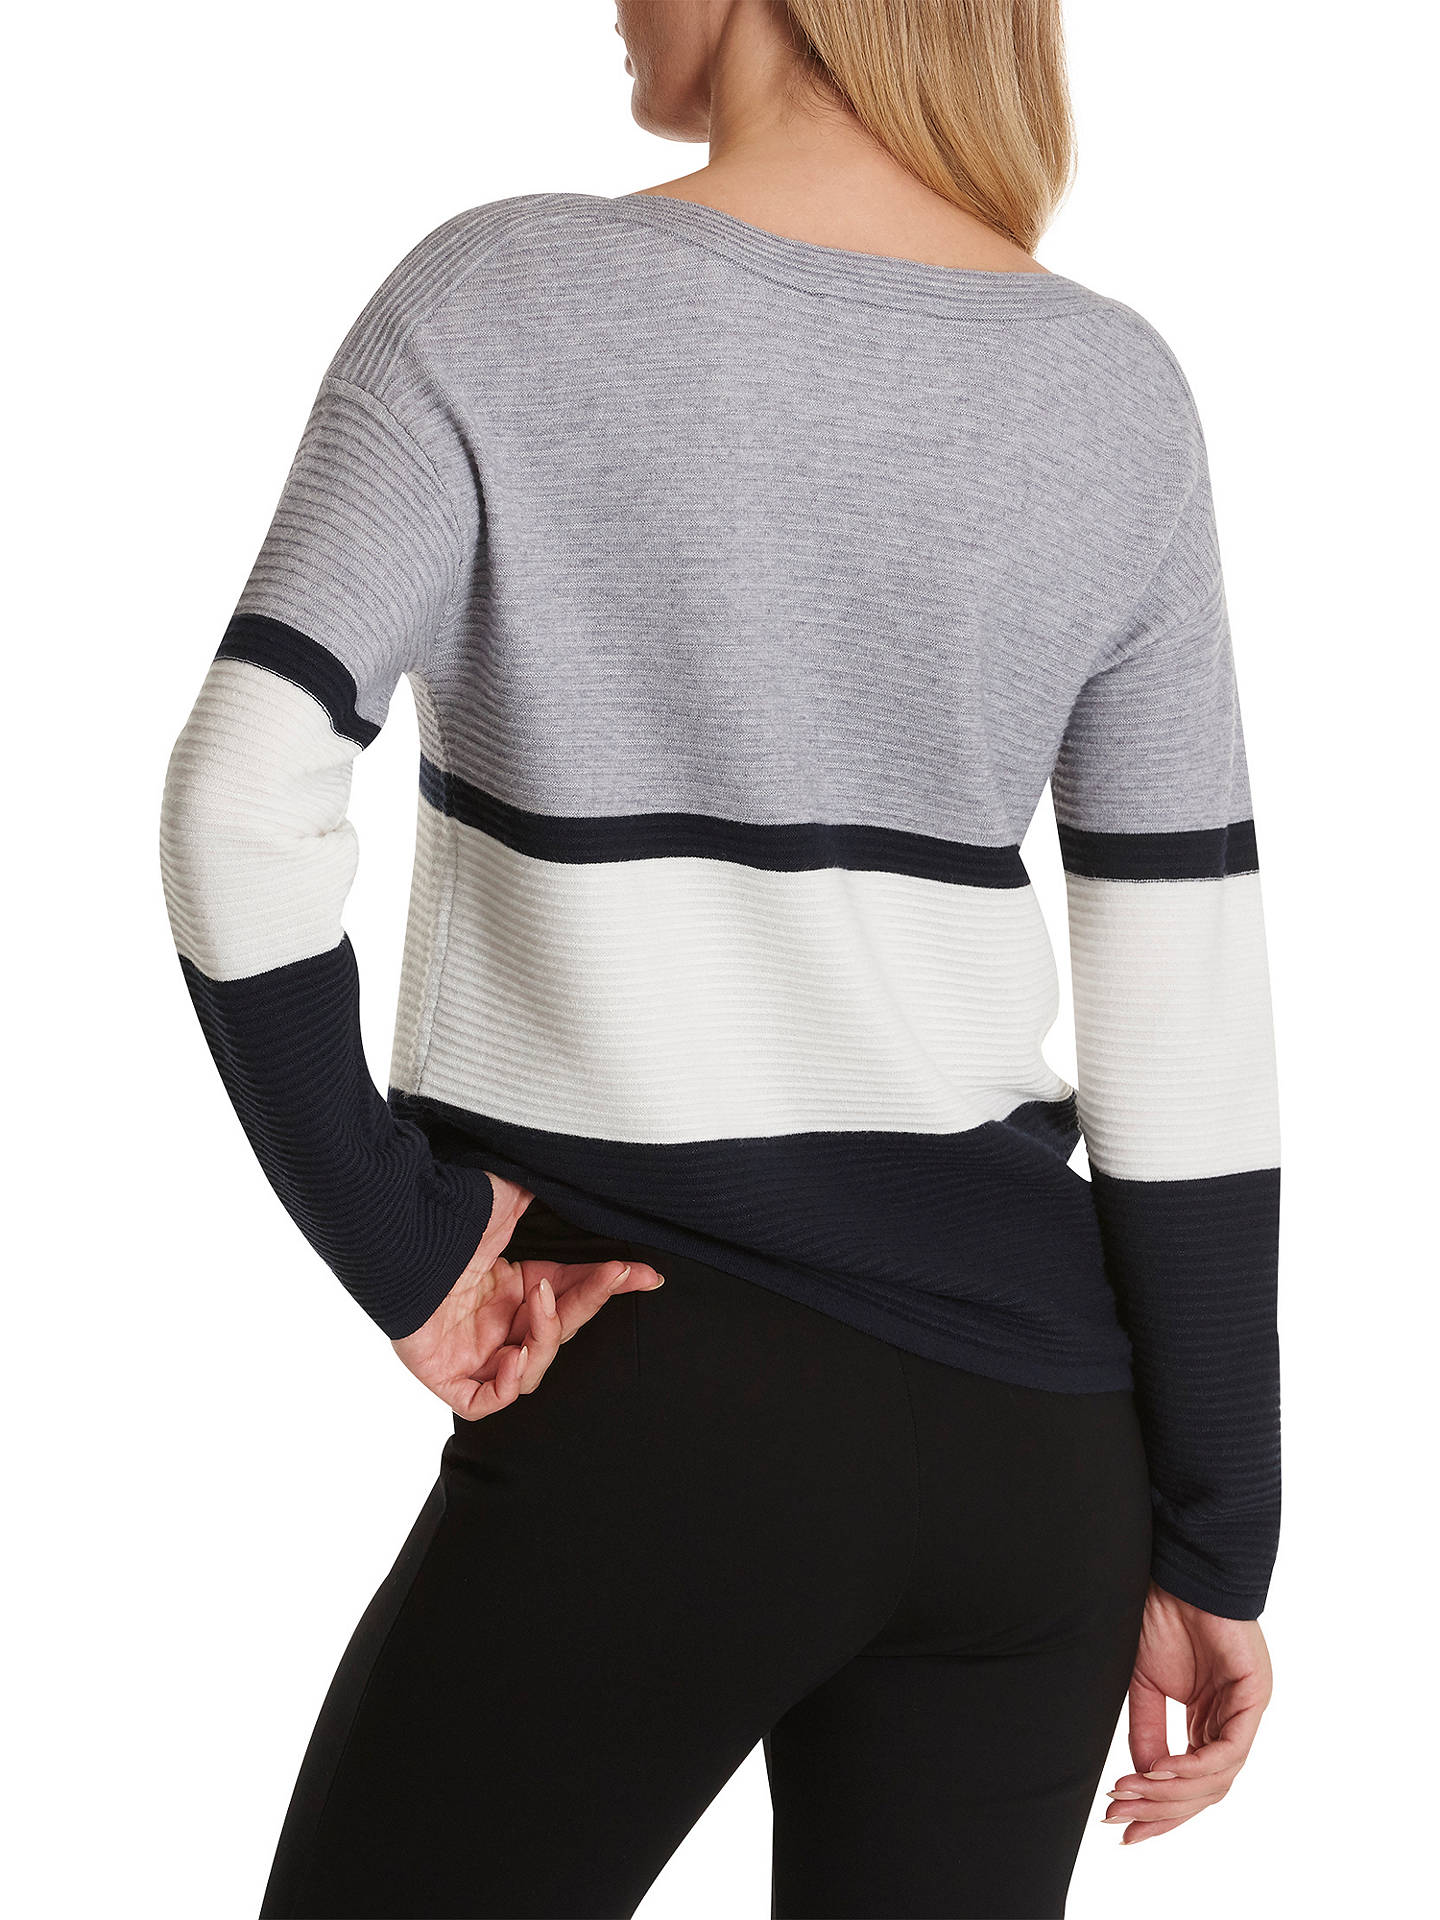 BuyBetty Barclay Colour Block Striped Jumper, Blue Mid, 10 Online at johnlewis.com